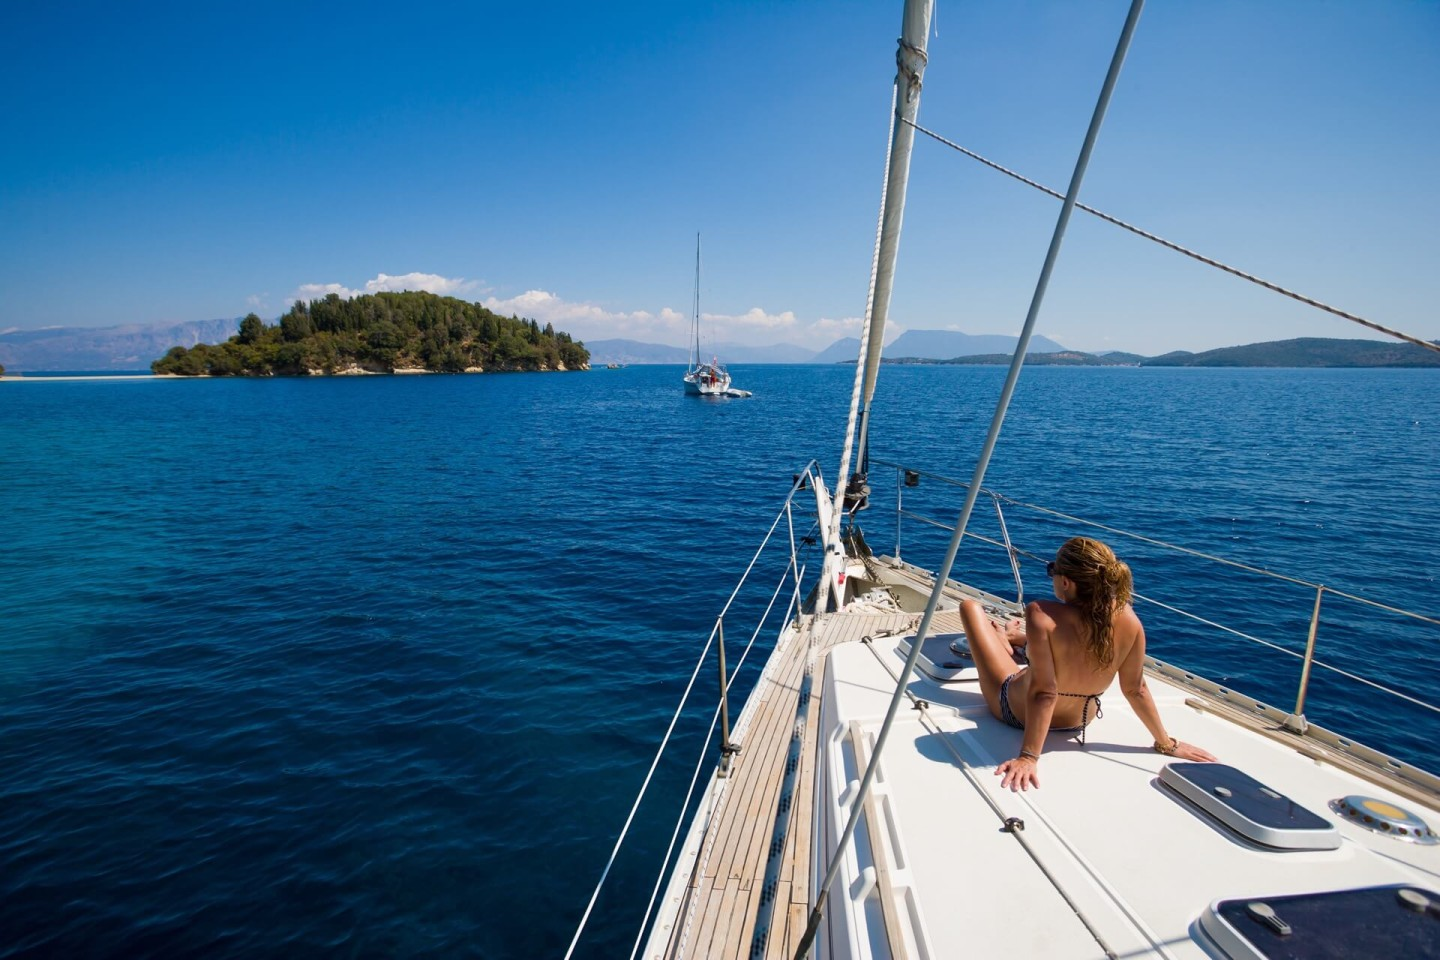 relax and unwind with your girlfriend on daily sailing trips in croatia